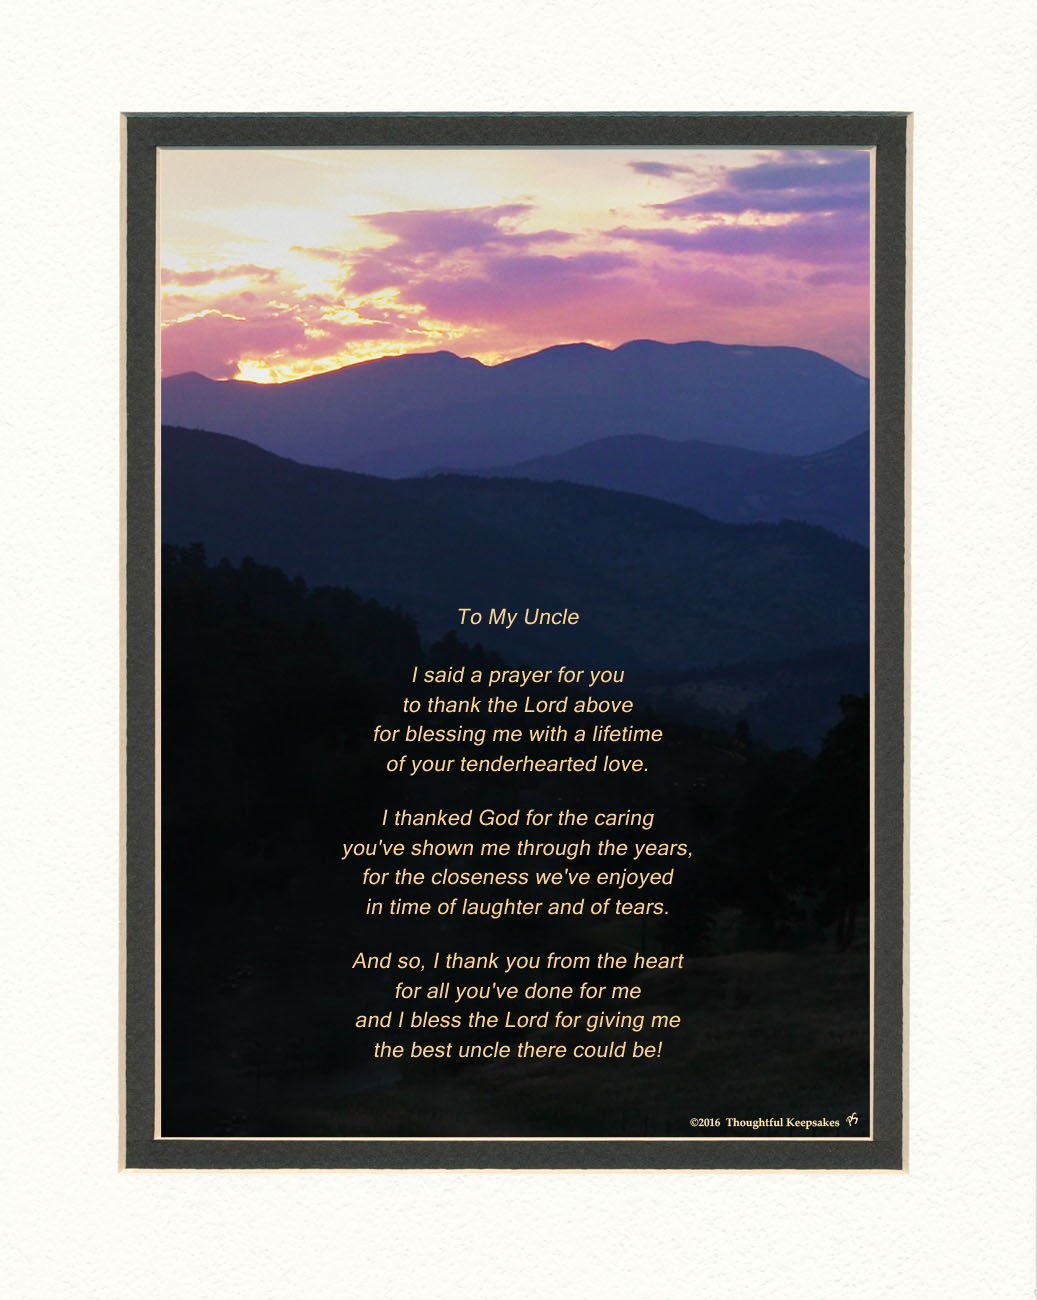 Uncle Gift with ''Thank You Prayer for Best Uncle'' Poem. Mts Sunset Photo, 8x10 Double Matted. Special Gift for Birthday, Christmas Gift for Uncle